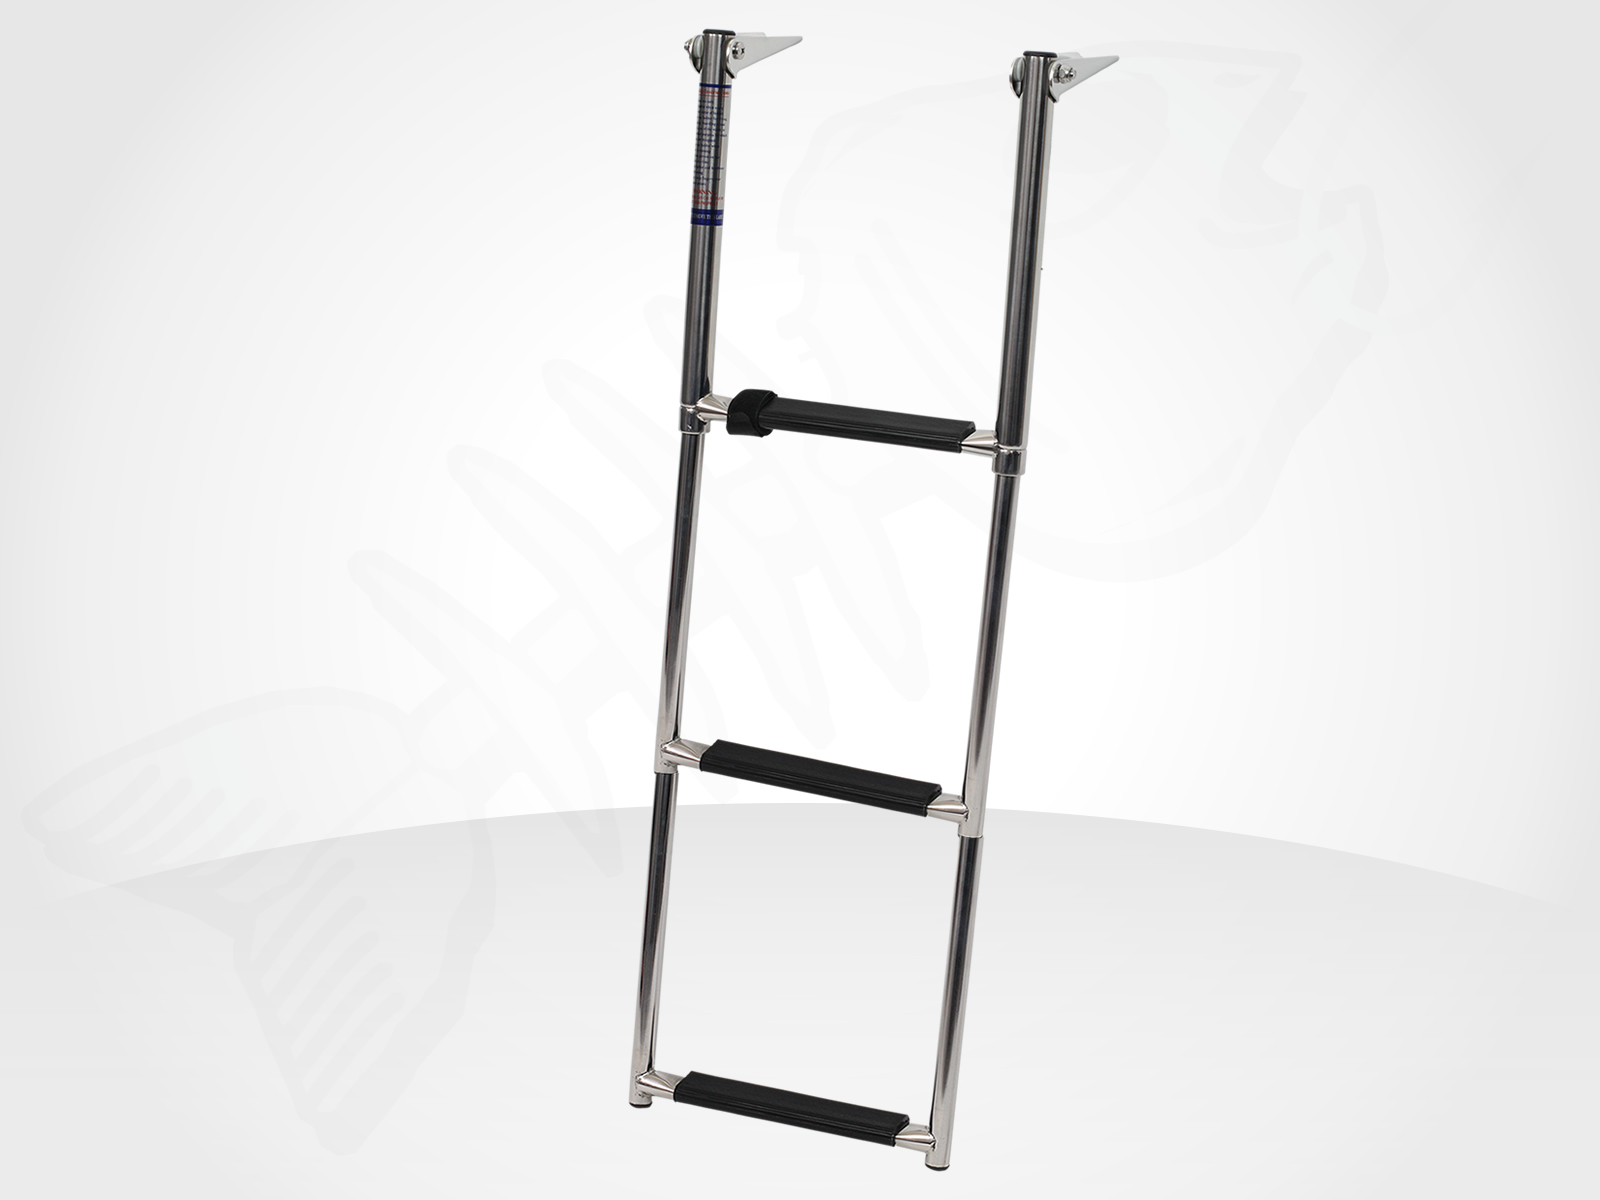 3 Step Stainless Steel Telescopic Boat Ladder Swim Boarding